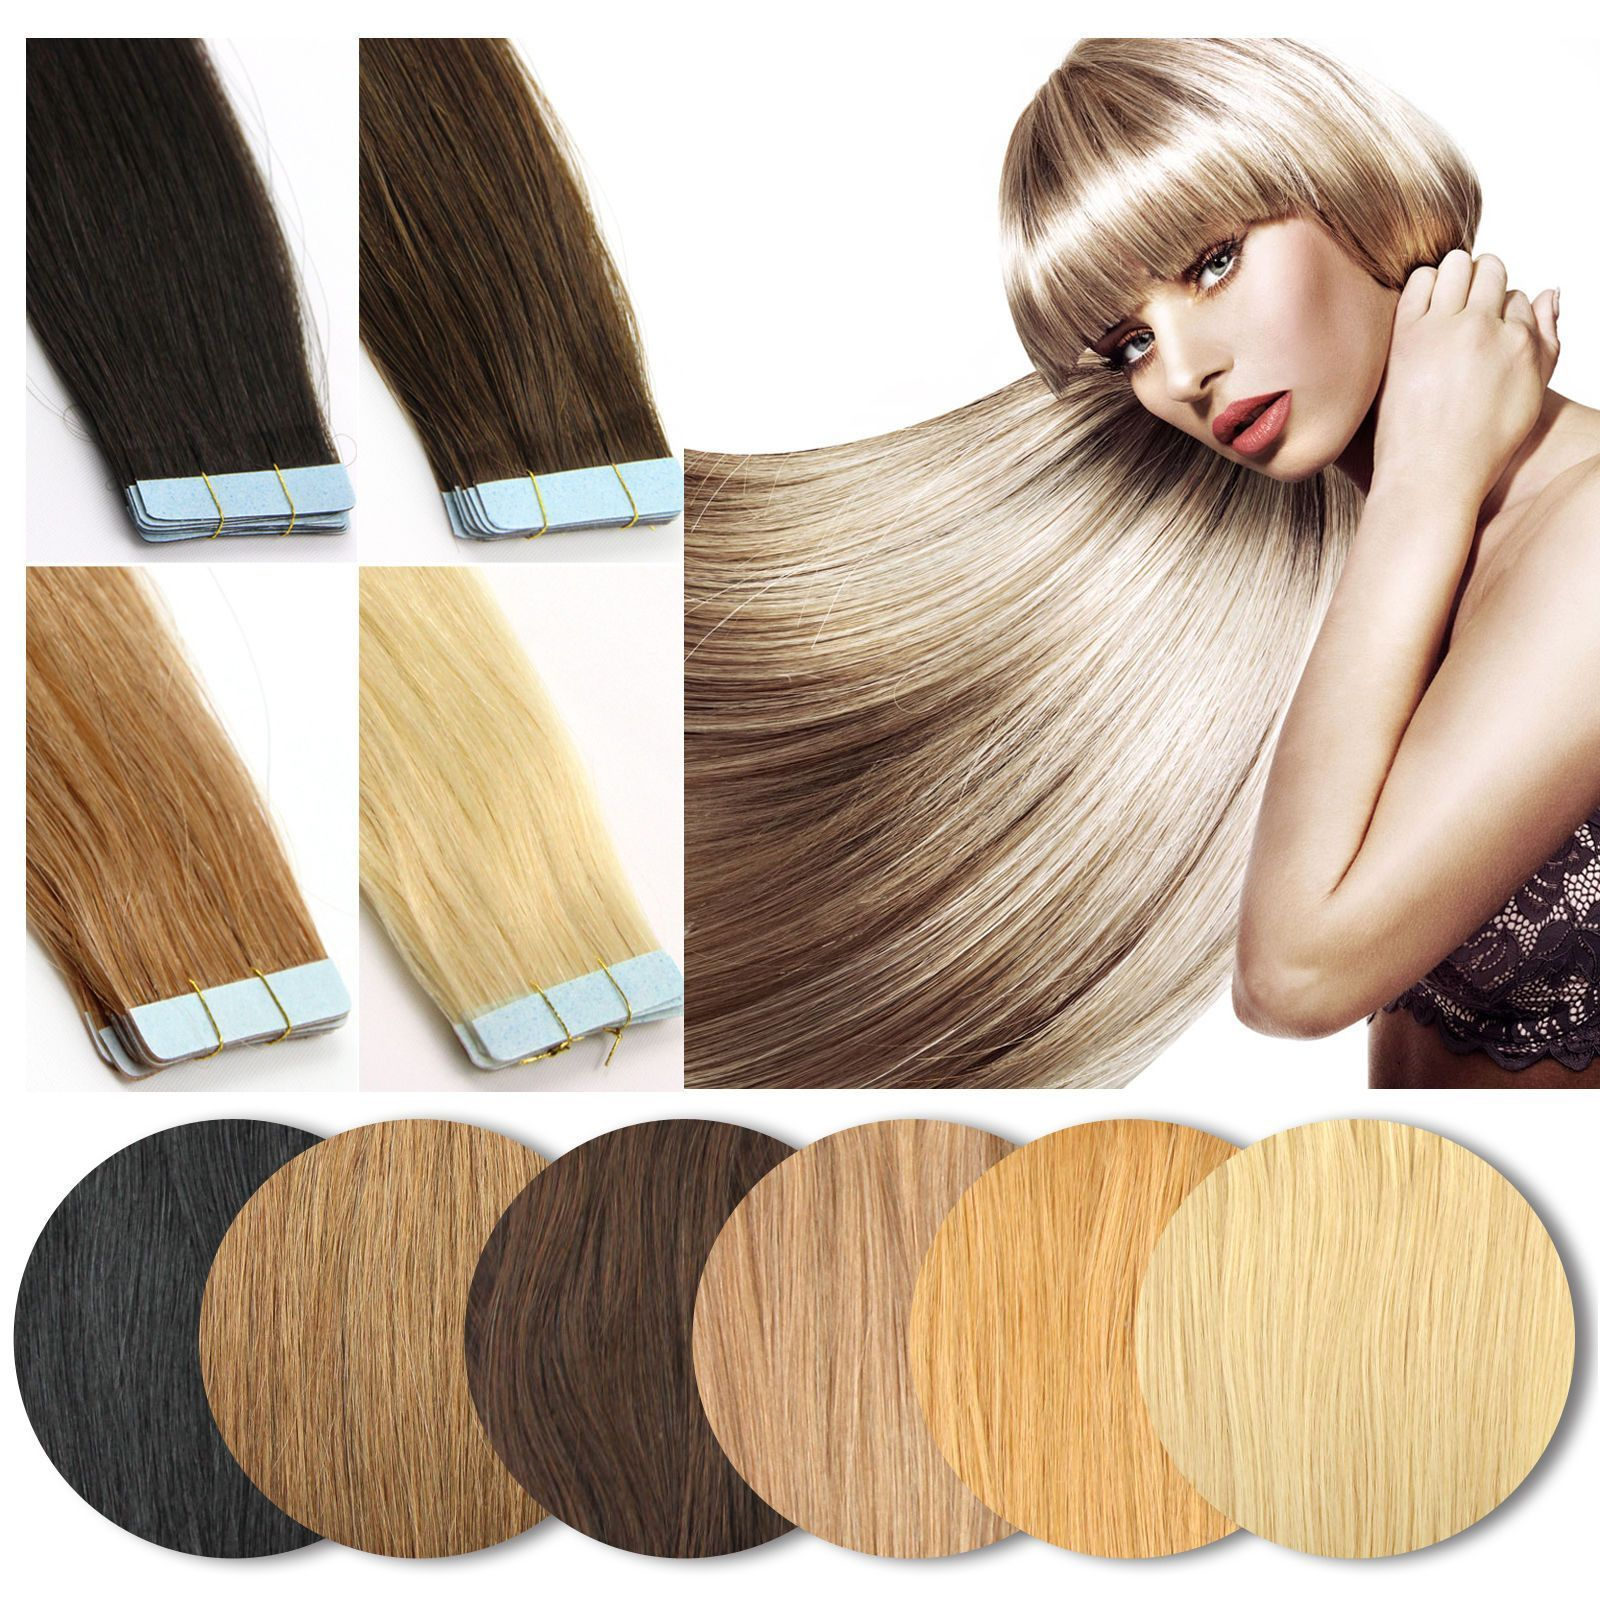 3 - Seamless 14-26Inch Pu Skin Weft Tape In Double Drawn Remy Human Hair  Extensions  ebay  Fashion b344d1cf1